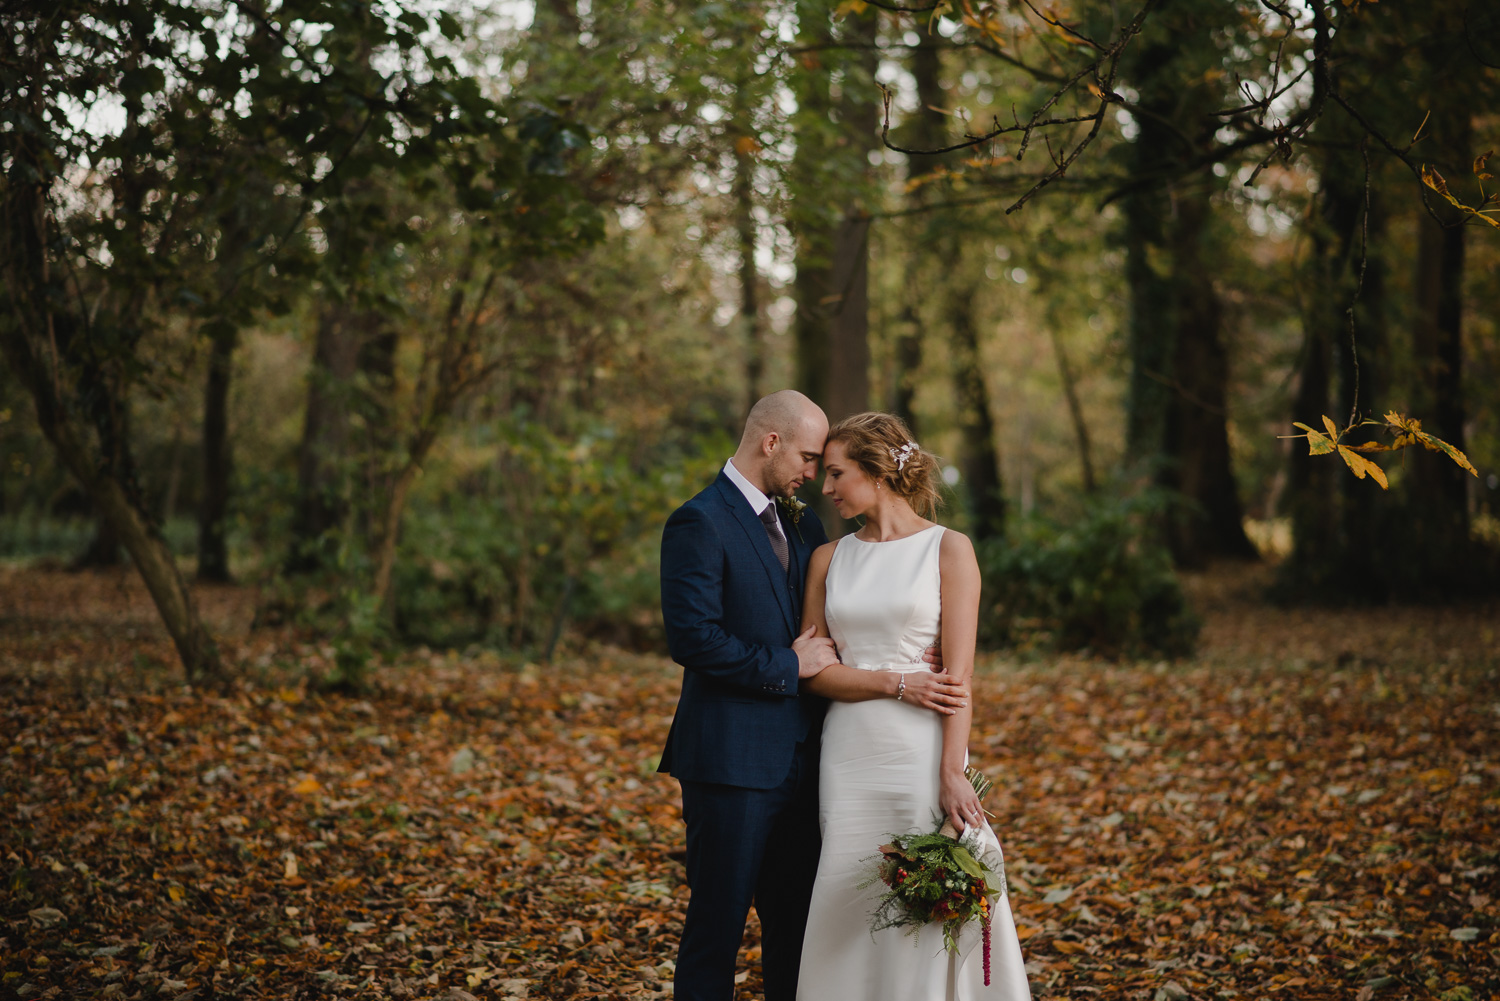 George & Julie - Autumn Wedding | Templeton Hotel